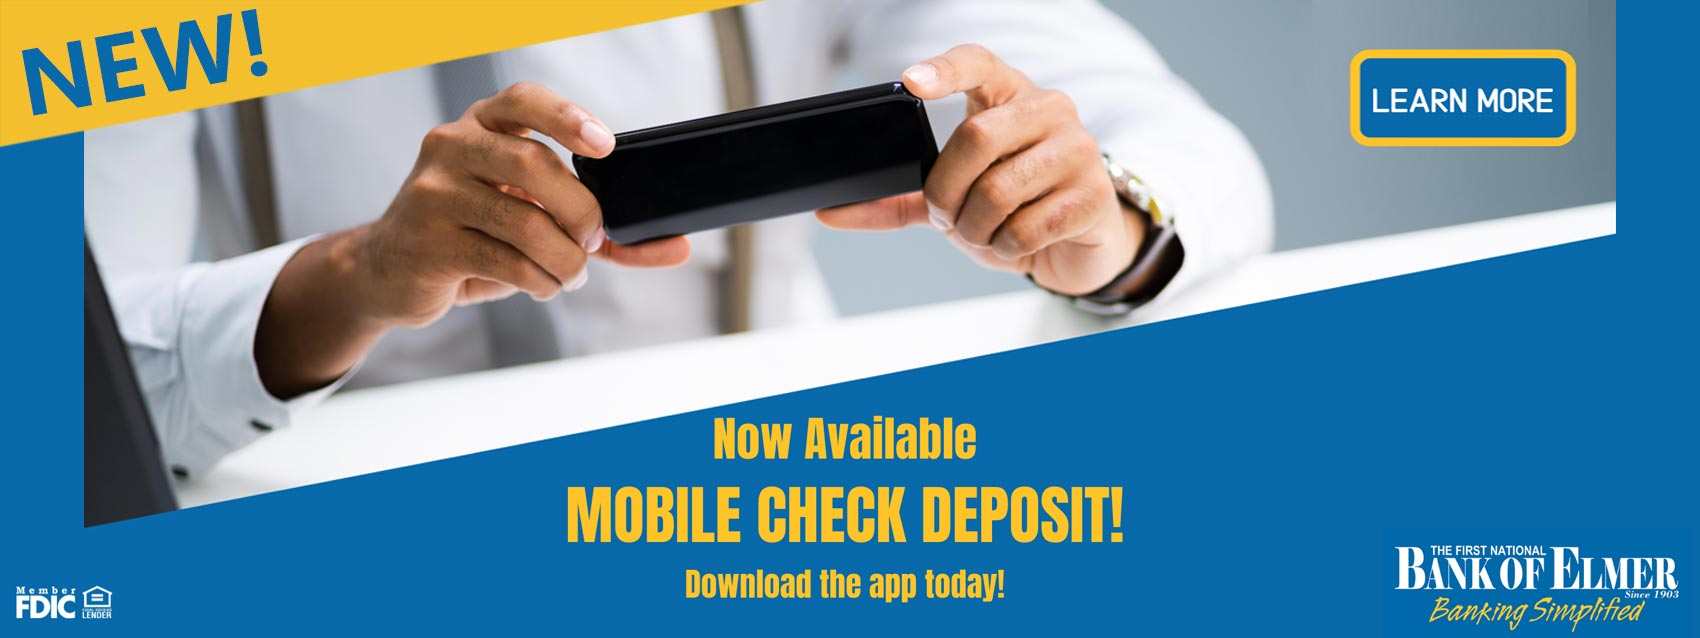 Mobile banking now available